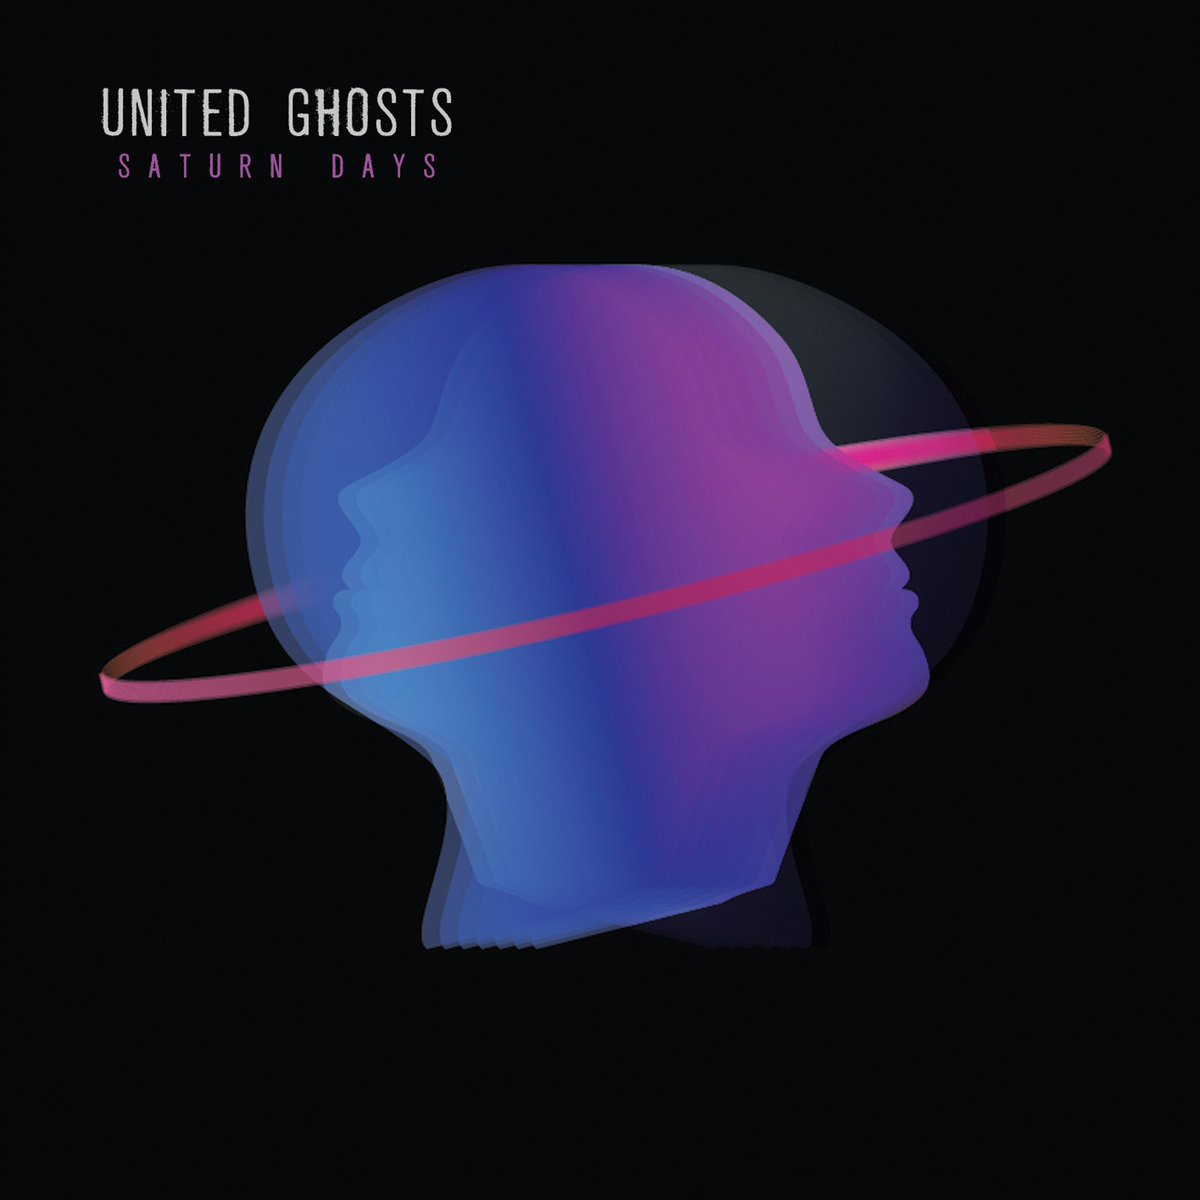 United Ghosts - Saturn Days